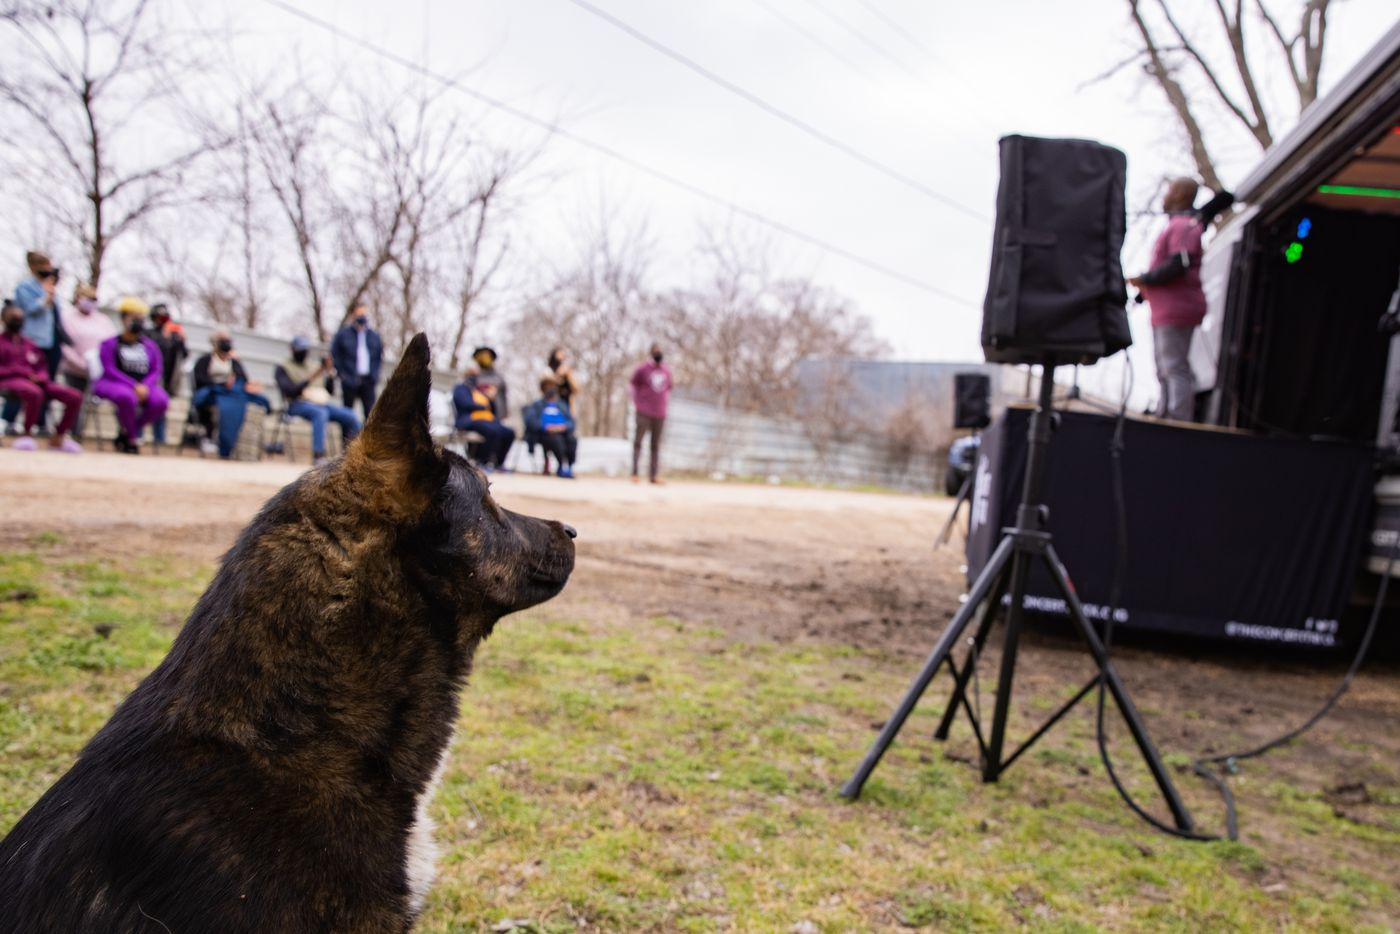 People, including the neighbor's dog, stop to listen to opera singer Lawrence Brownlee perform outside of Marsha Jackson's home in Dallas on Friday, Feb. 26, 2021. Quincy Roberts, the contractor who moved Shingle Mountain, surprised Jackson with the concert. (Juan Figueroa/ The Dallas Morning News)